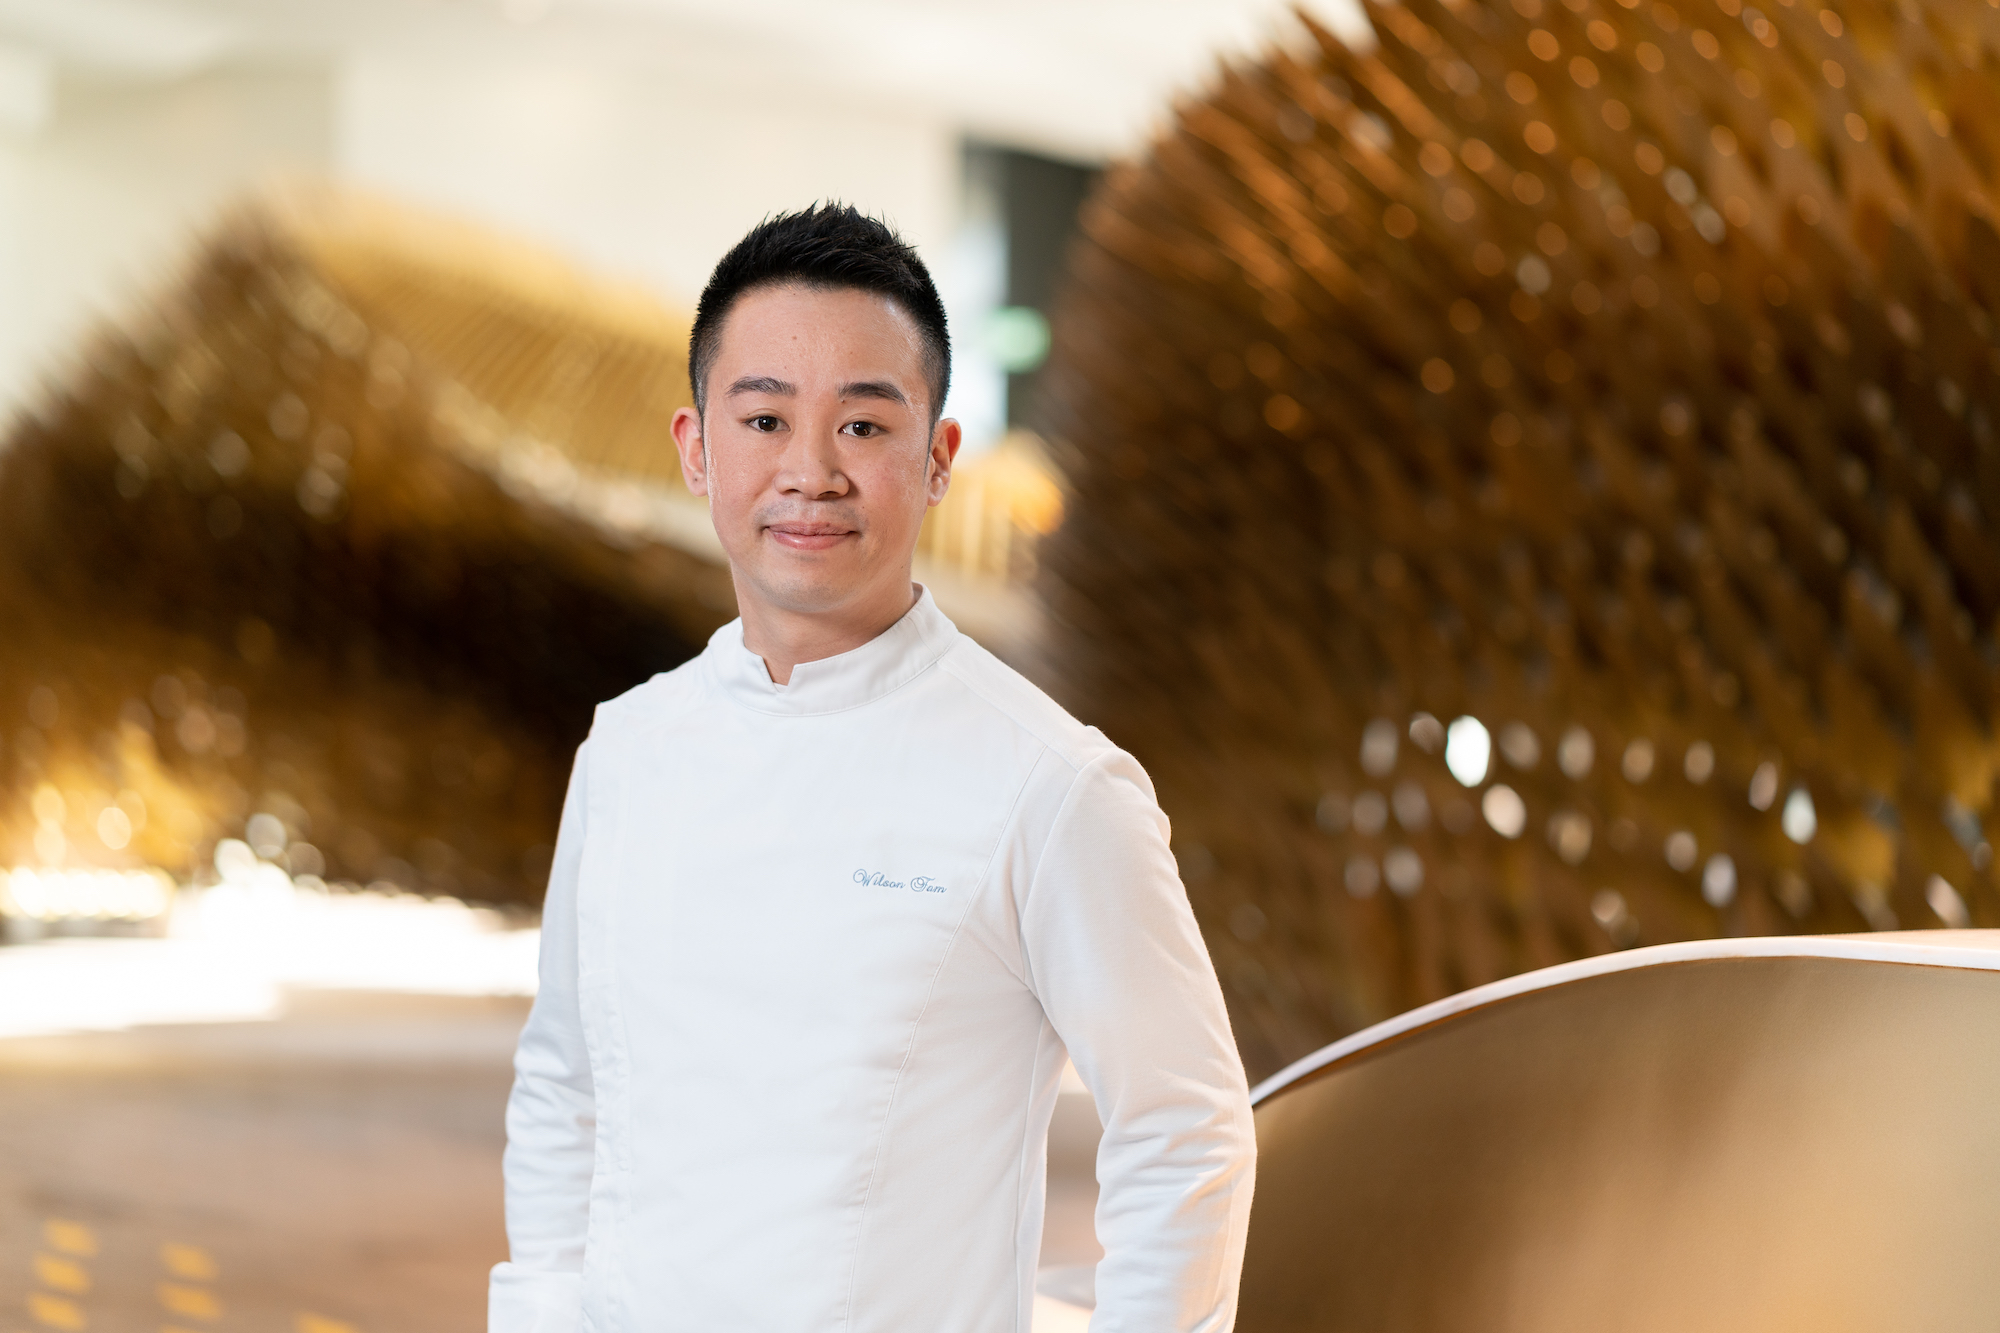 morpheus hotel yi city of dreams macau Executive Chef Wilson Fam